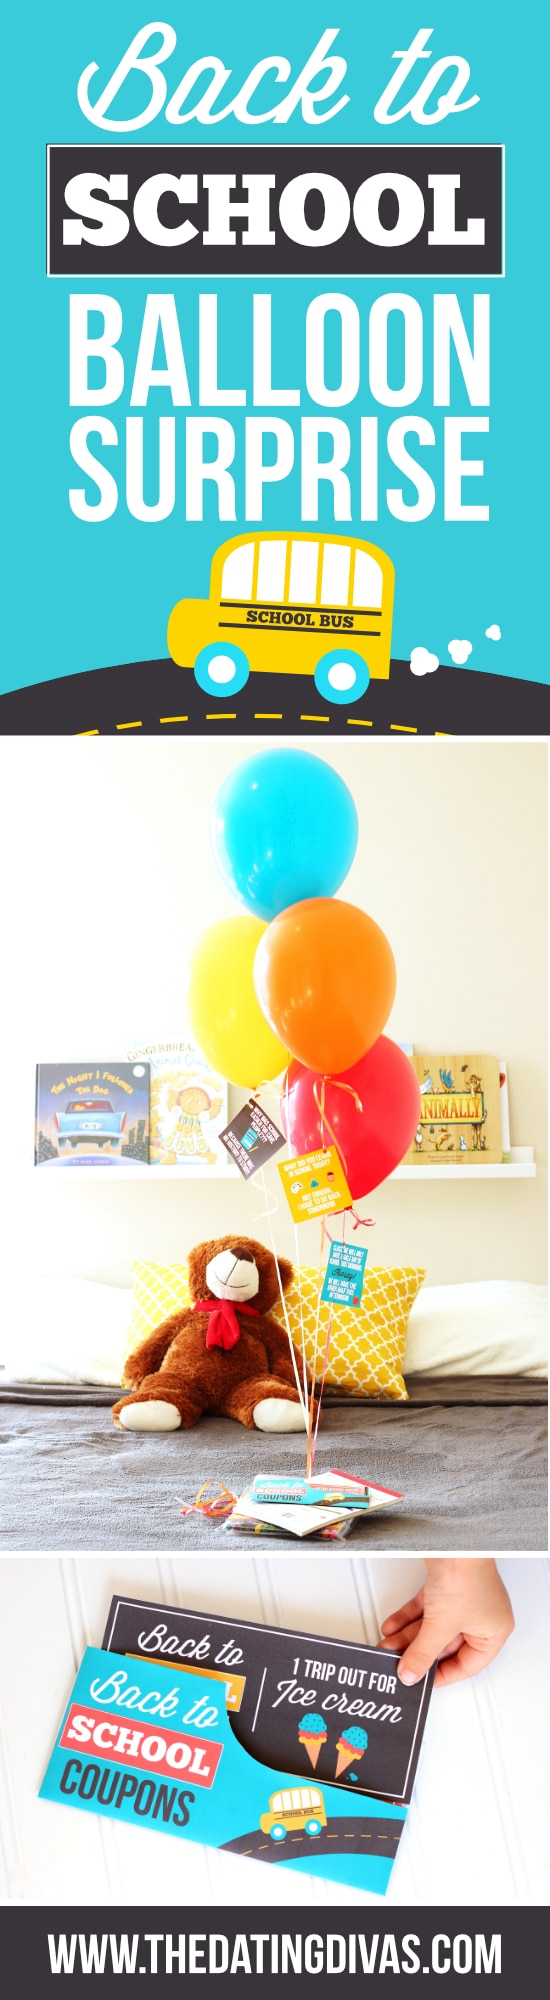 Back to School Balloon Surprise